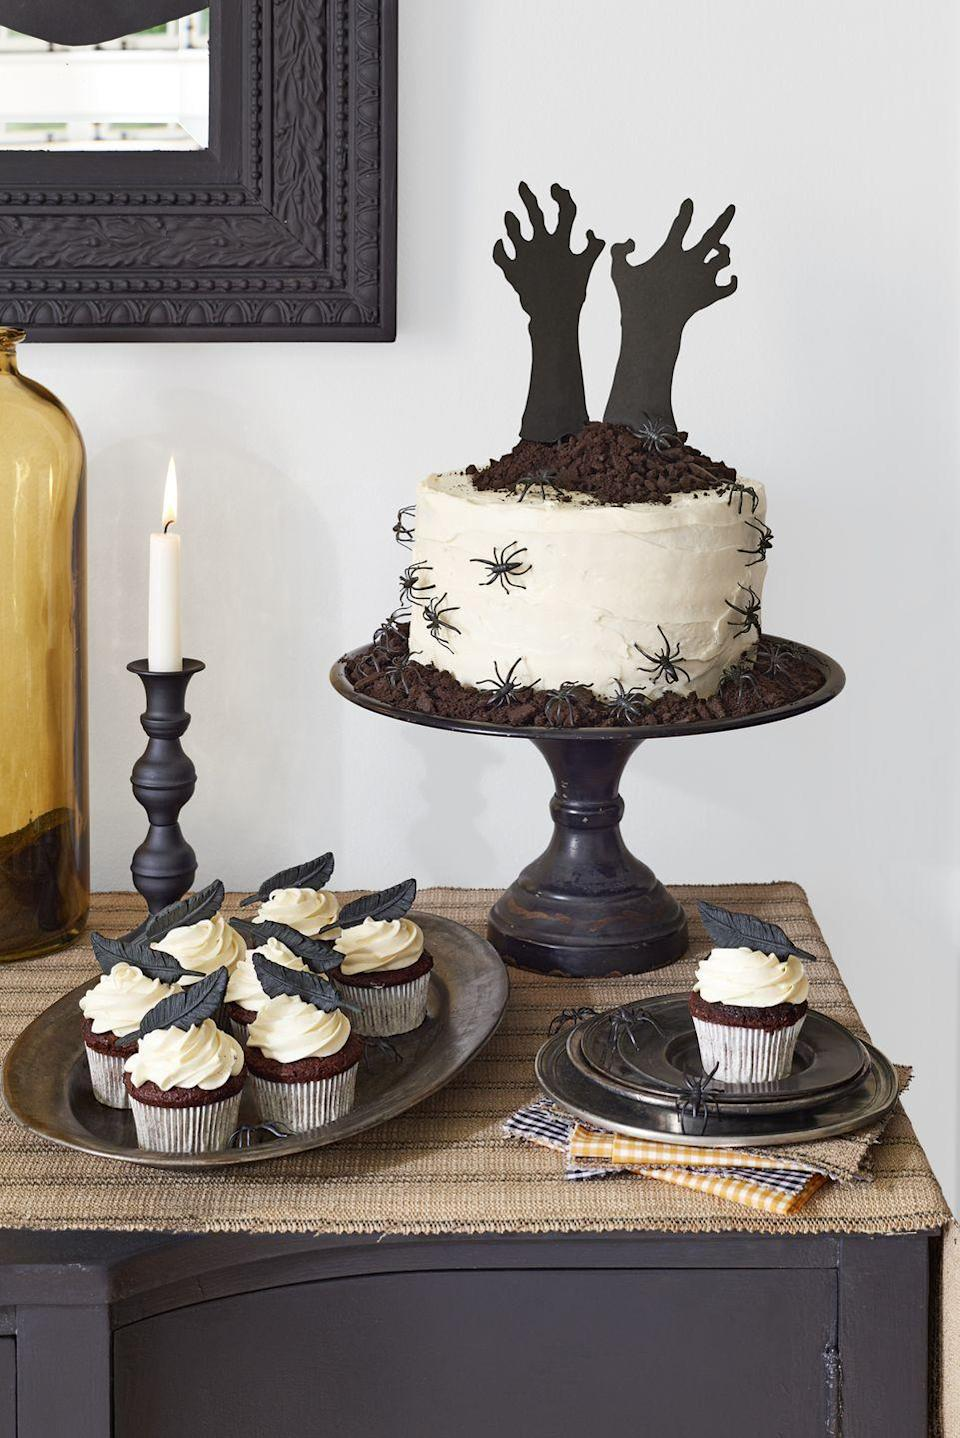 """<p>The eye-catching """"Help Me!"""" cake is simply a store-bought white cake with a few dark twists. (Talk about hands-off!) </p><p>Start with a store-bought frosted layer cake. Cut out a pair of arms and hands in black craft paper and tape to skewers to help them stand upright. Pile on a mound of """"dirt""""— crumbled chocolate cookies—to give it that """"buried alive"""" vibe. Top vanilla-frosted cupcakes with <span class=""""redactor-unlink"""">edible fondant raven feathers</span>. For an extra hair-raising element, add plastic critters around the cake. </p><p><strong><a href=""""https://www.countryliving.com/food-drinks/recipes/a1568/circus-tent-frosting-3678/"""" rel=""""nofollow noopener"""" target=""""_blank"""" data-ylk=""""slk:Get recipe for buttercream"""" class=""""link rapid-noclick-resp"""">Get recipe for buttercream</a>.</strong></p>"""